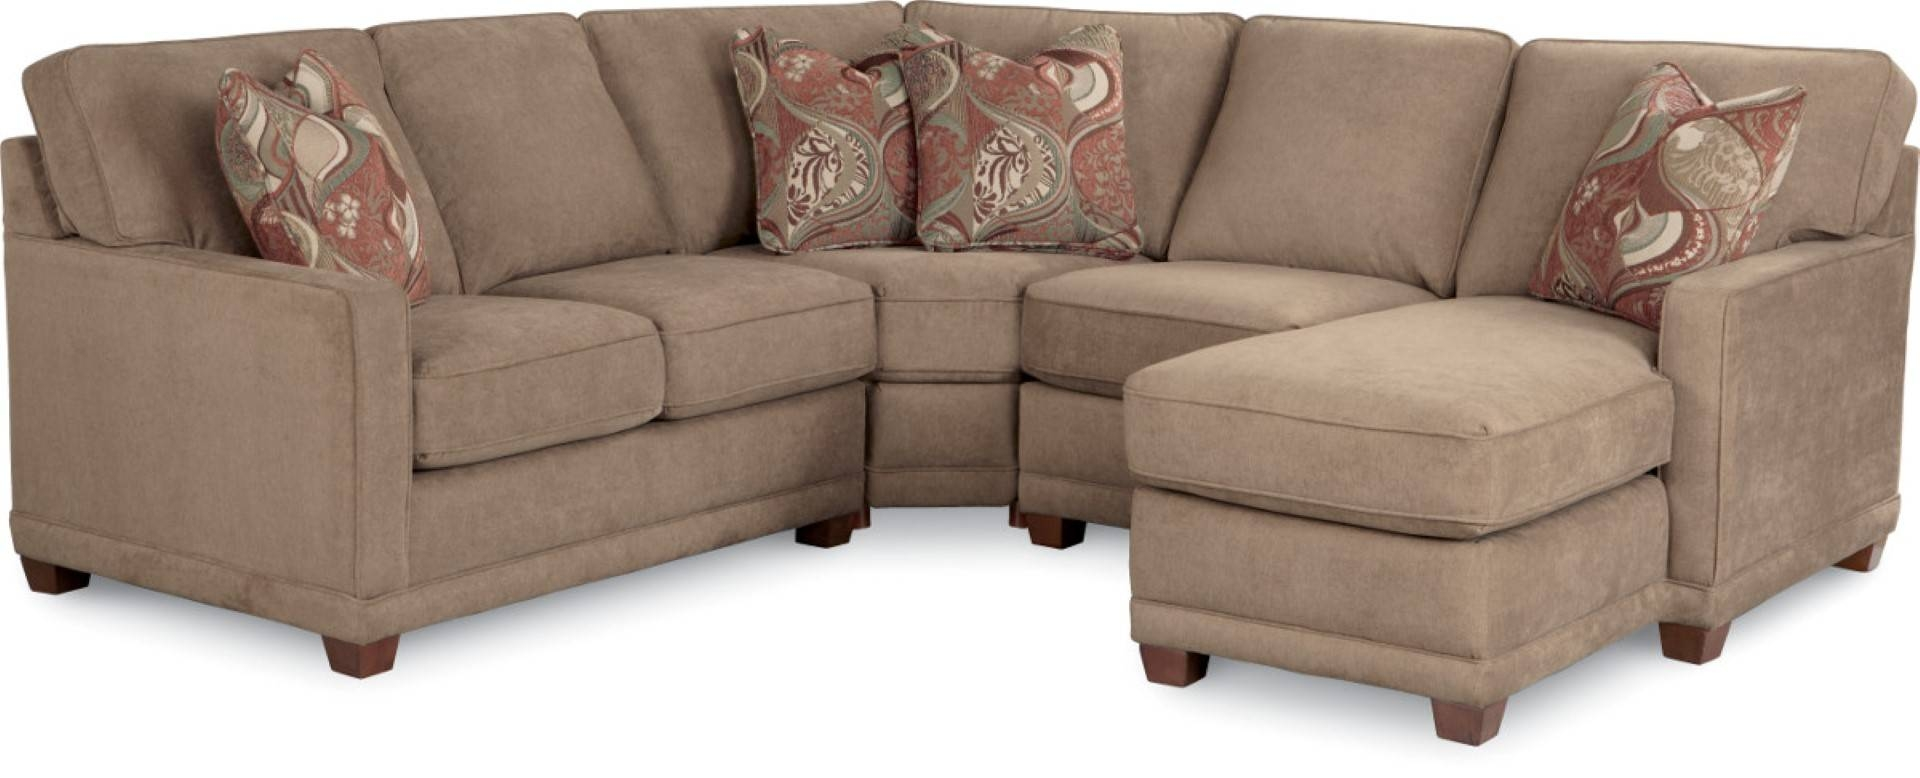 Furniture: Lazyboy Sectional With Cool Various Designs And Colors for 7 Seat Sectional Sofa (Image 7 of 30)